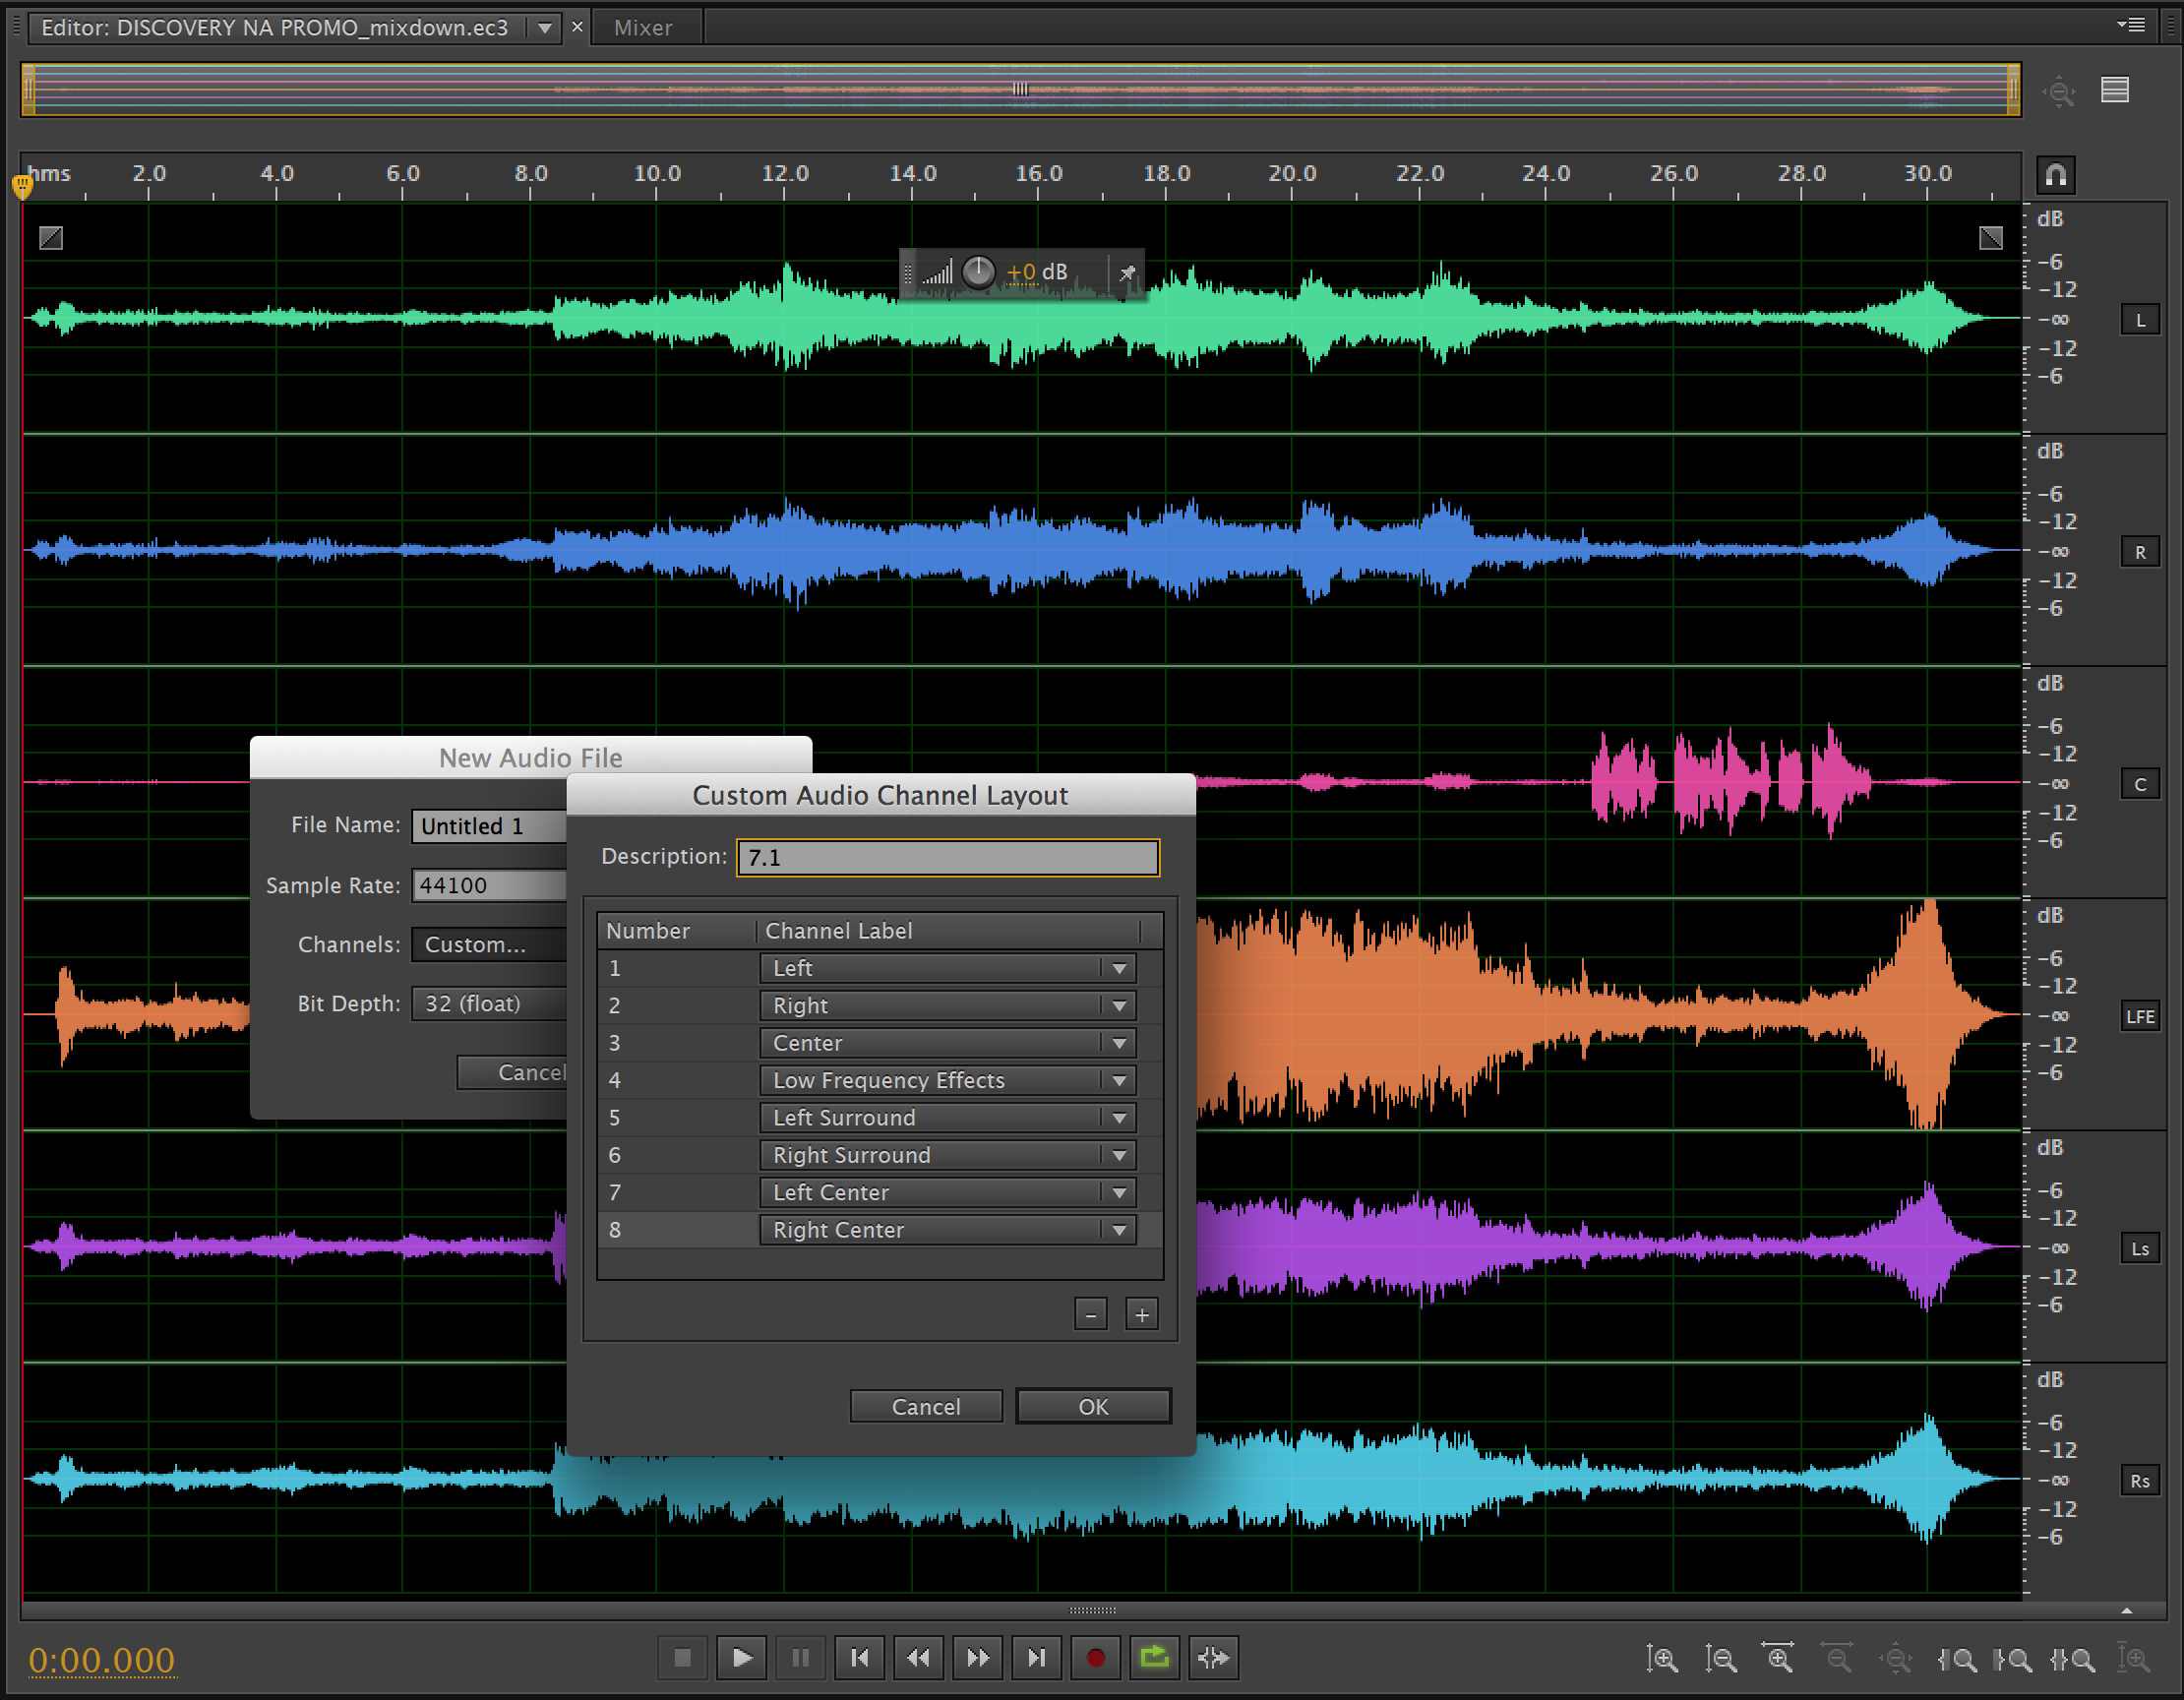 Adobe Audition CC 2019 ed For Windows and macOS Free Download